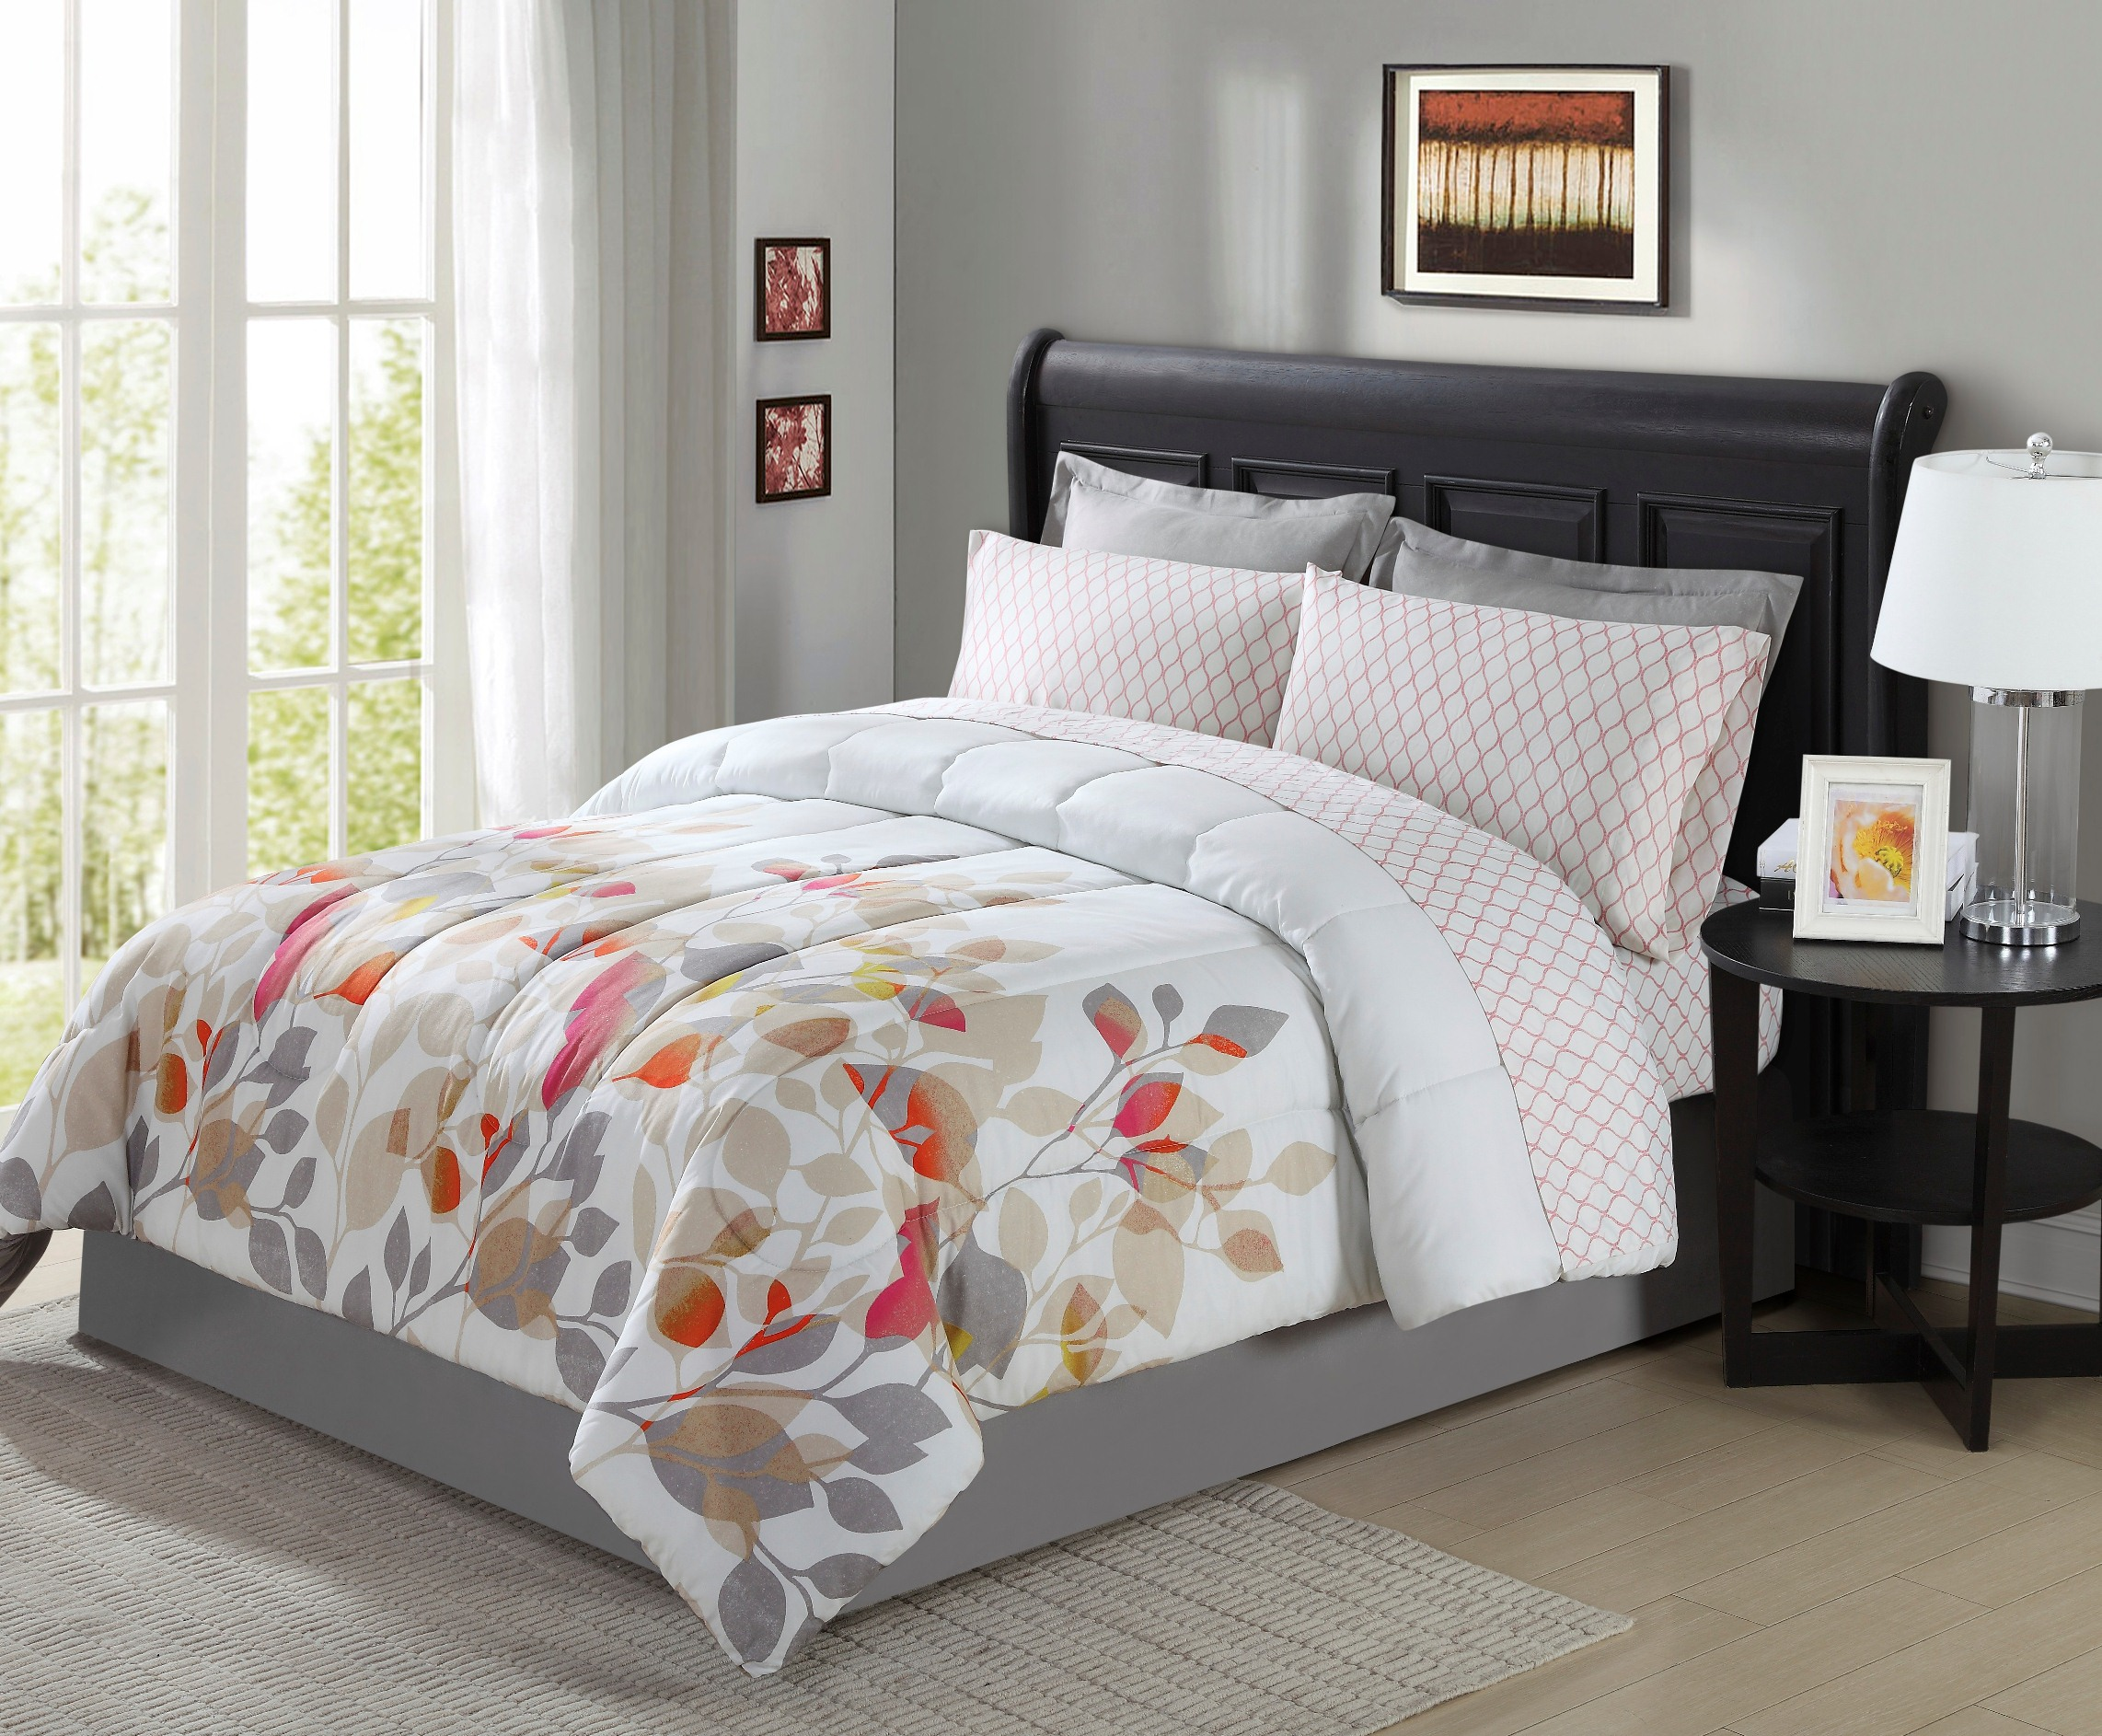 bed sets colormate complete bed set - bree HZBYQQX